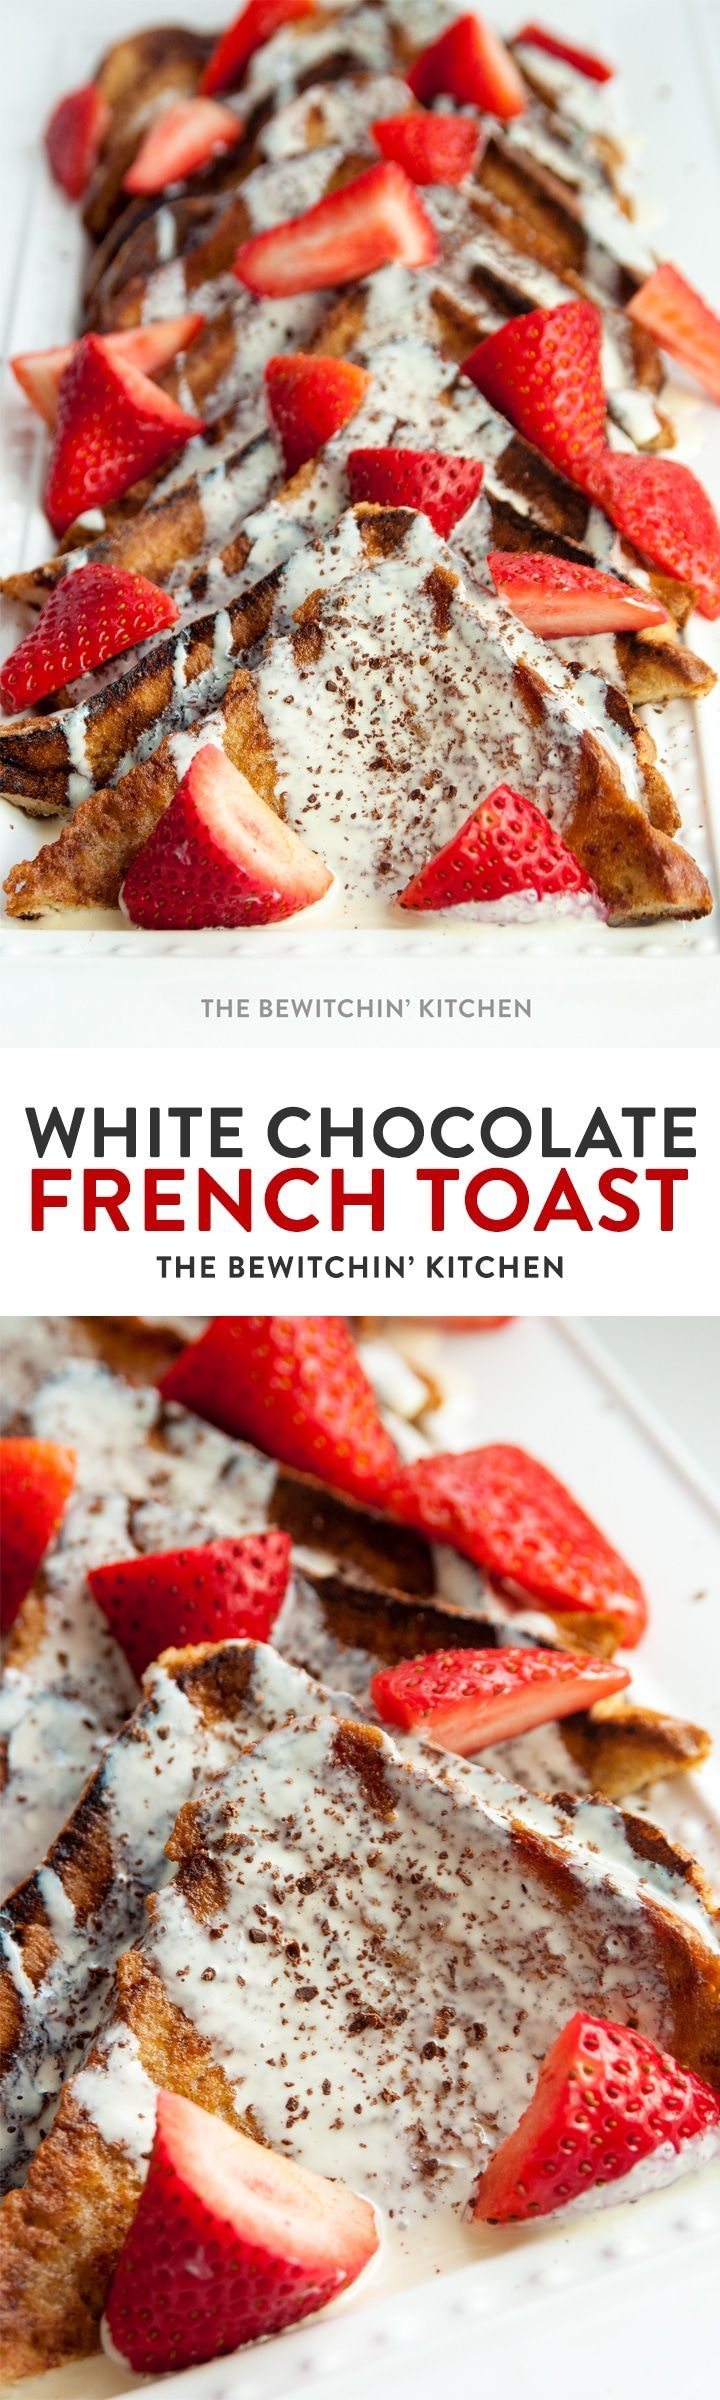 White Chocolate French Toast. This dessert inspired breakfast recipe is super simple and super yummy! 10/10! Make this for birthday breakfasts, brunch, or to celebrate another Netflix series finished.